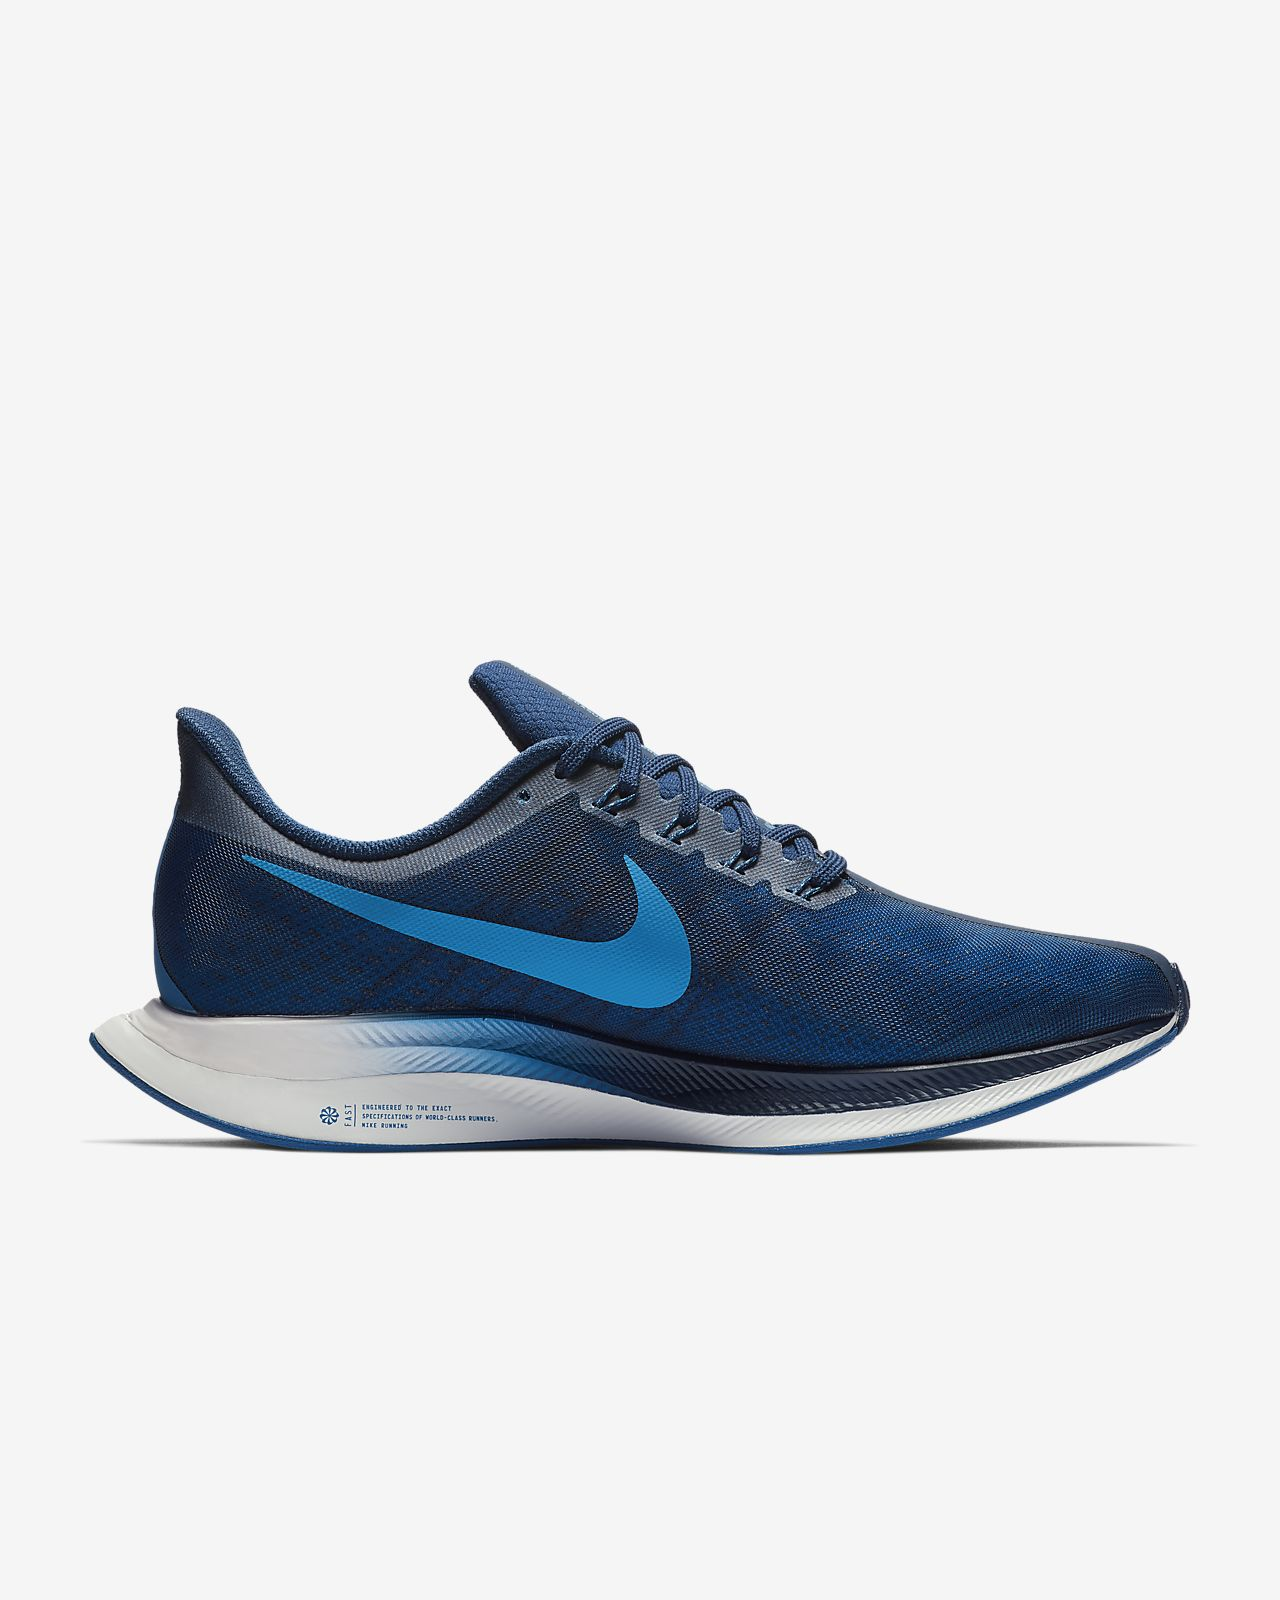 new arrival c667d 61bcf ... Nike Zoom Pegasus Turbo Men s Running Shoe